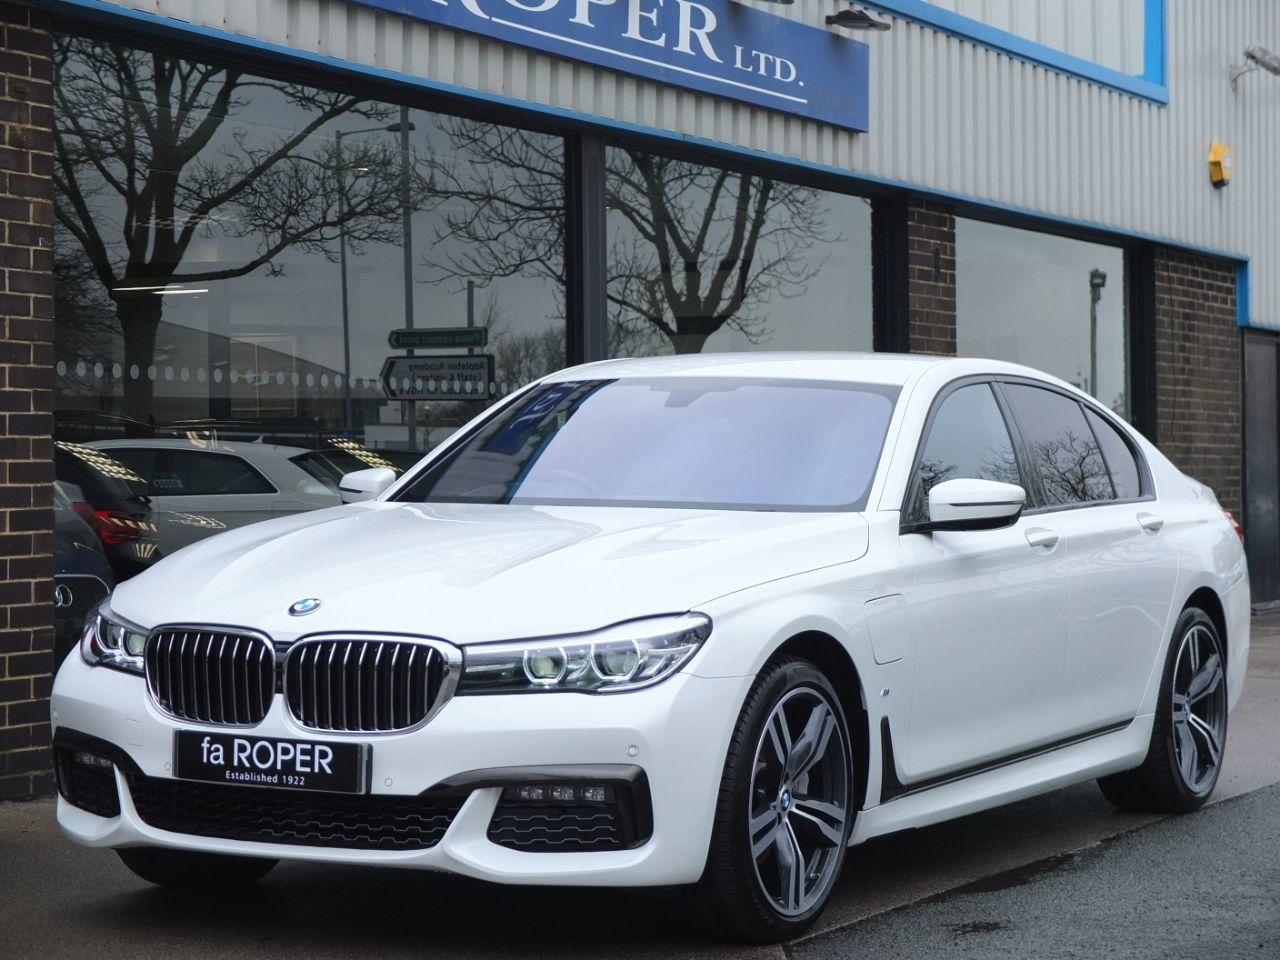 BMW 7 Series 2.0 740e M Sport Auto Saloon Petrol / Electric Hybrid Alpine WhiteBMW 7 Series 2.0 740e M Sport Auto Saloon Petrol / Electric Hybrid Alpine White at fa Roper Ltd Bradford